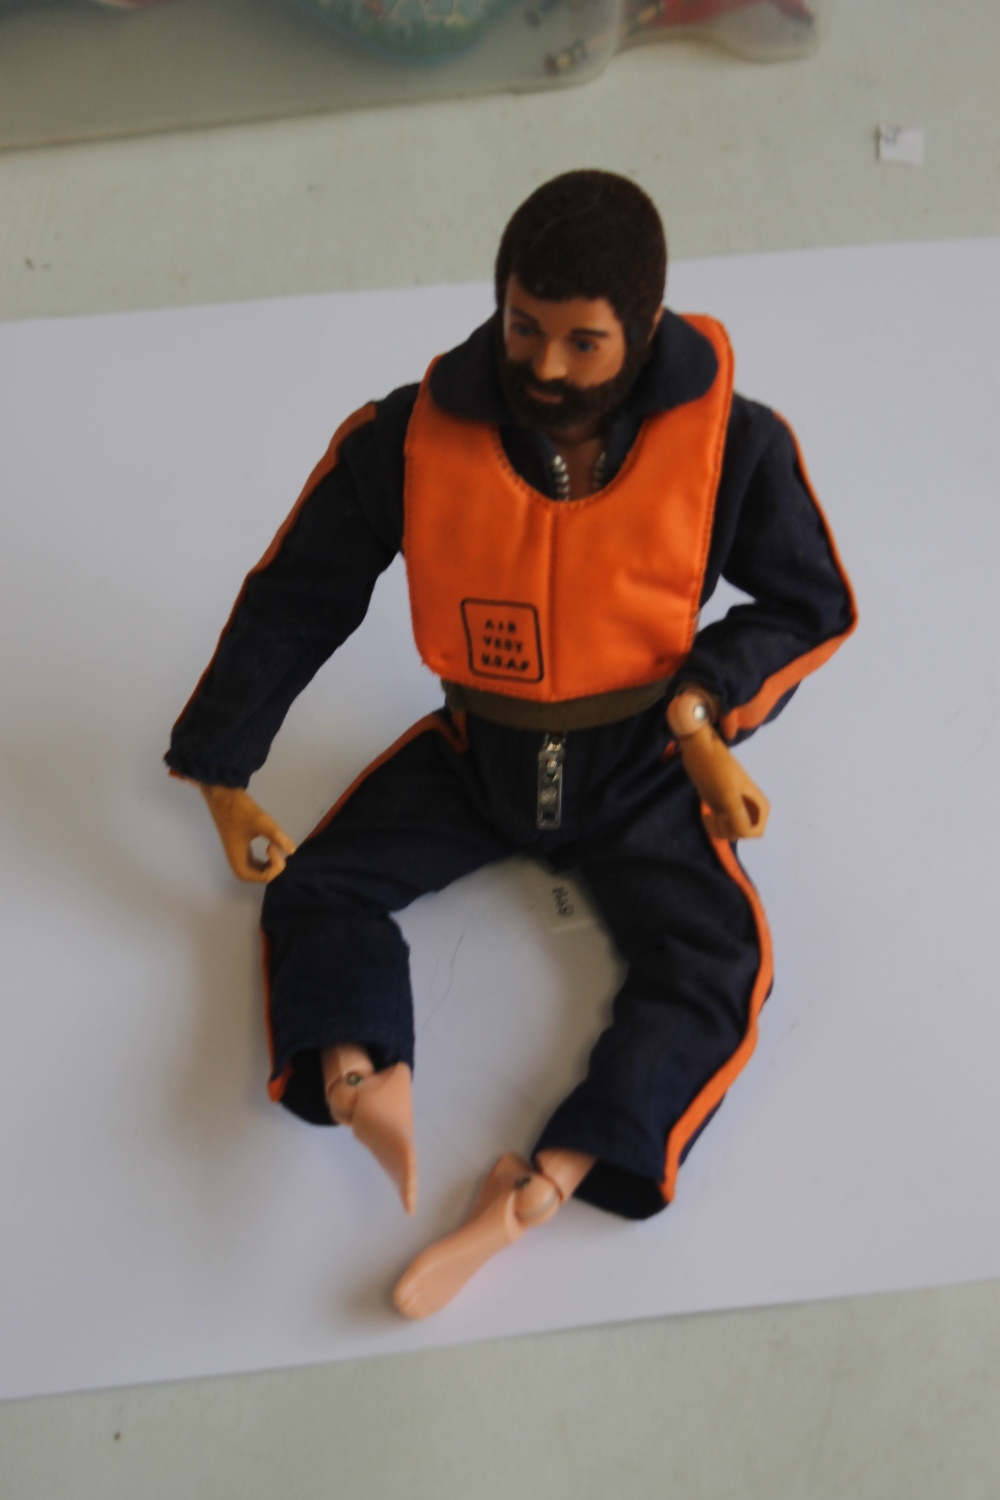 A VINTAGE ACTION MAN EAGLE EYES FIGURE WITH DARK FLOCK HAIR AND BEARD, in flying suit and USAF